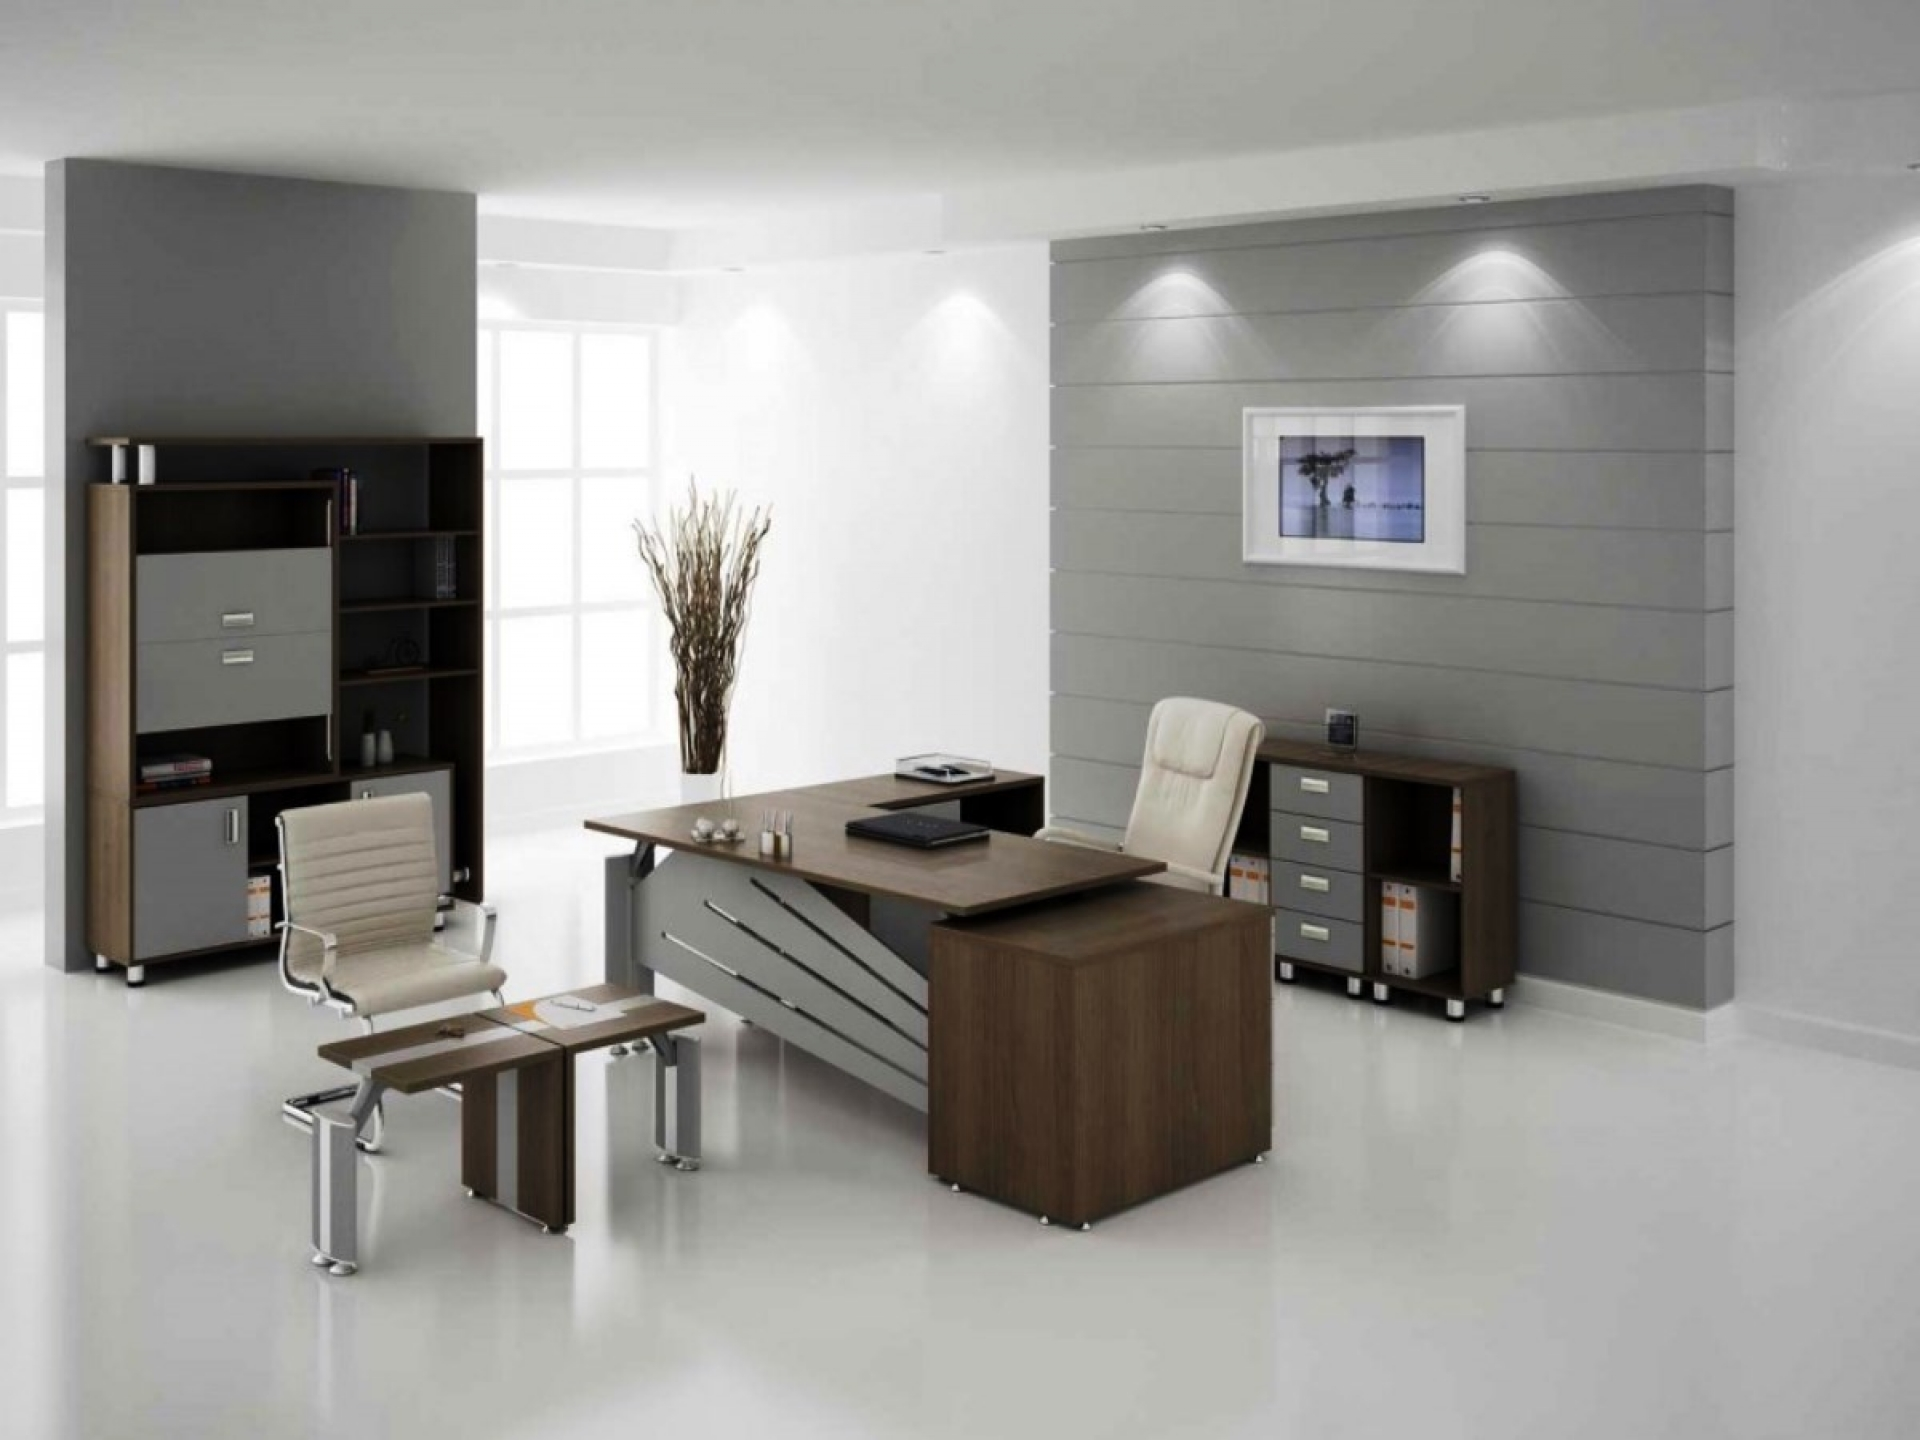 Eye Catching Small Office Decorating Ideas Of Ideassmall Business Designs Along With Remarkable Picture Acnn Decor